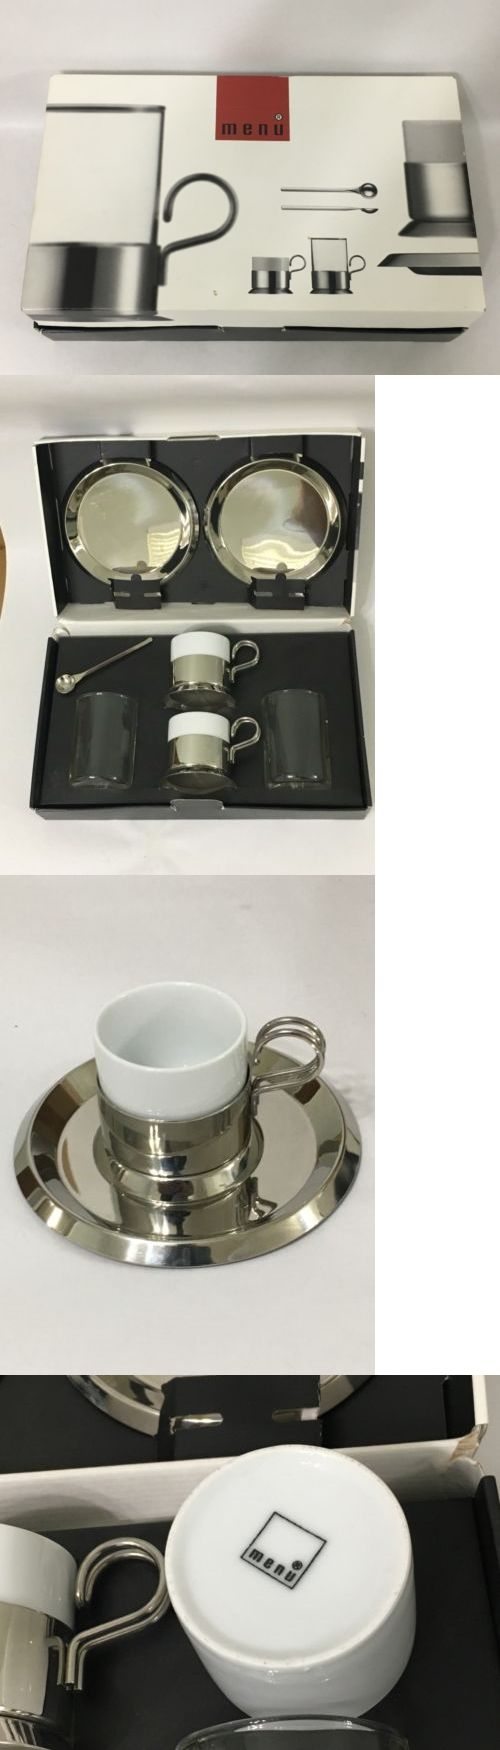 Mugs 20695: Menu Danish Steel House Espresso Tea Set By Scandinavian Designer Bent Falk -> BUY IT NOW ONLY: $49.99 on eBay!